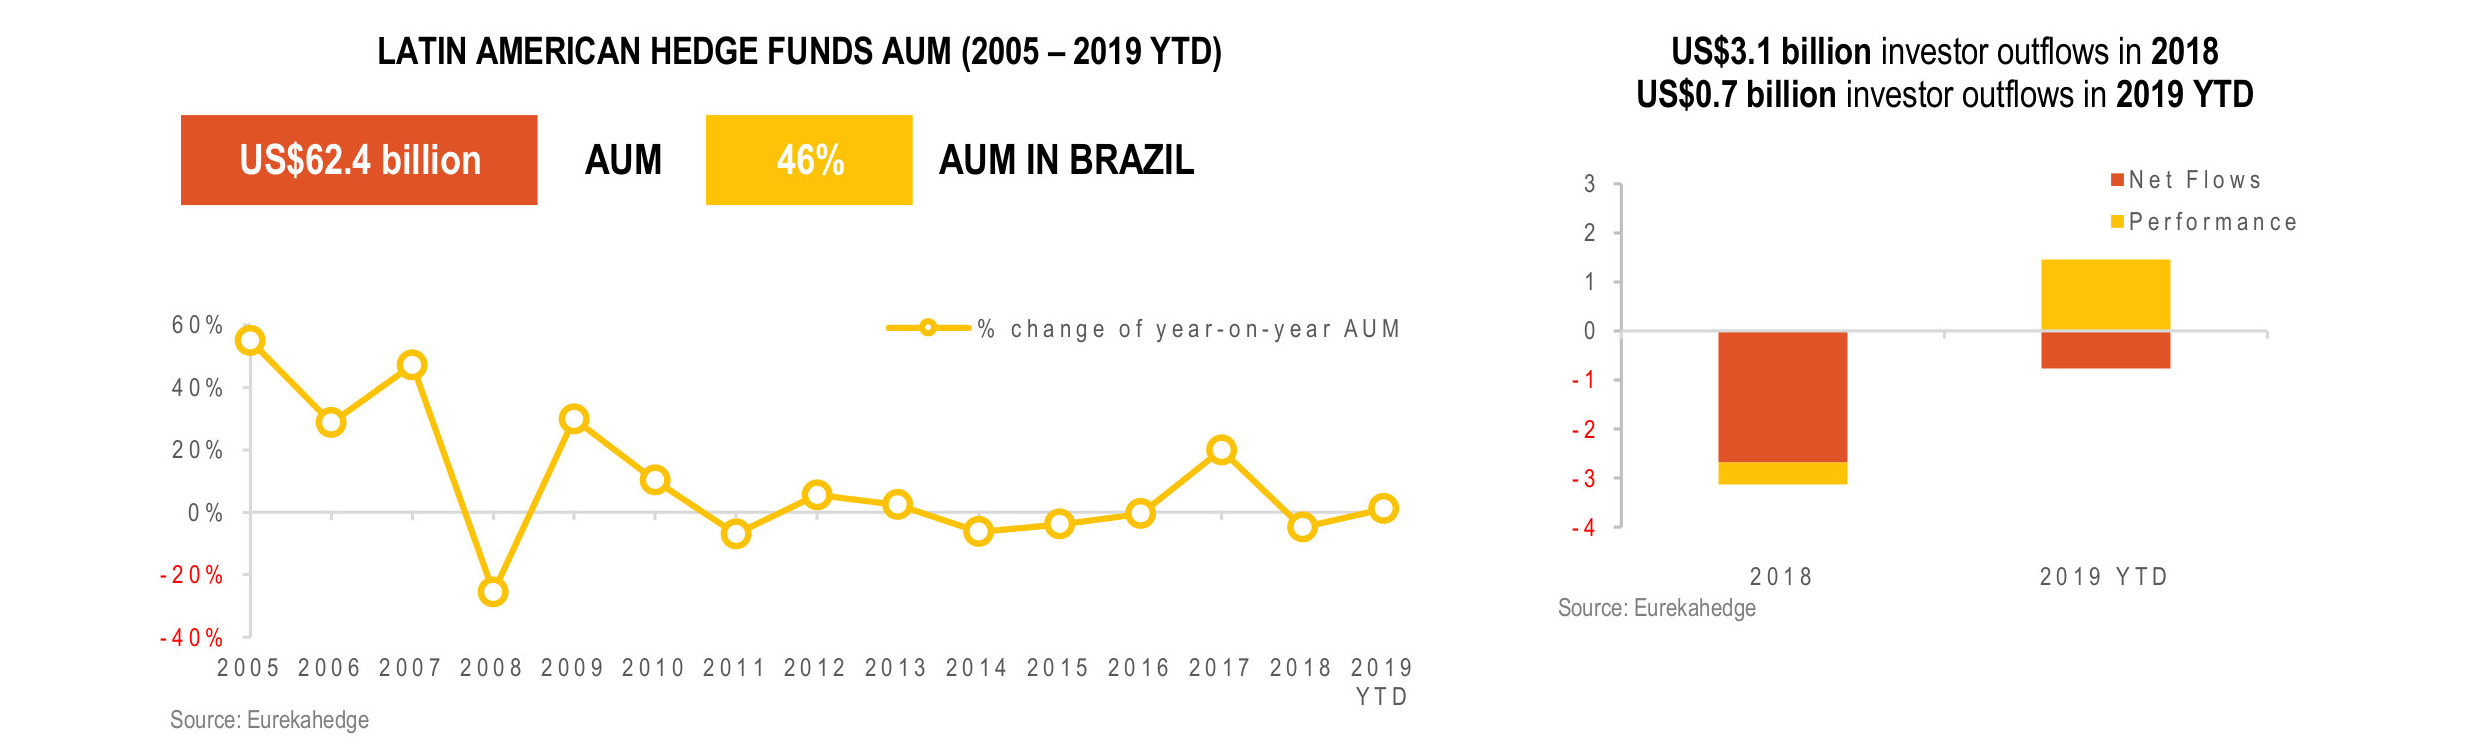 Latin American Hedge Funds Infographic May 2019 - AUM